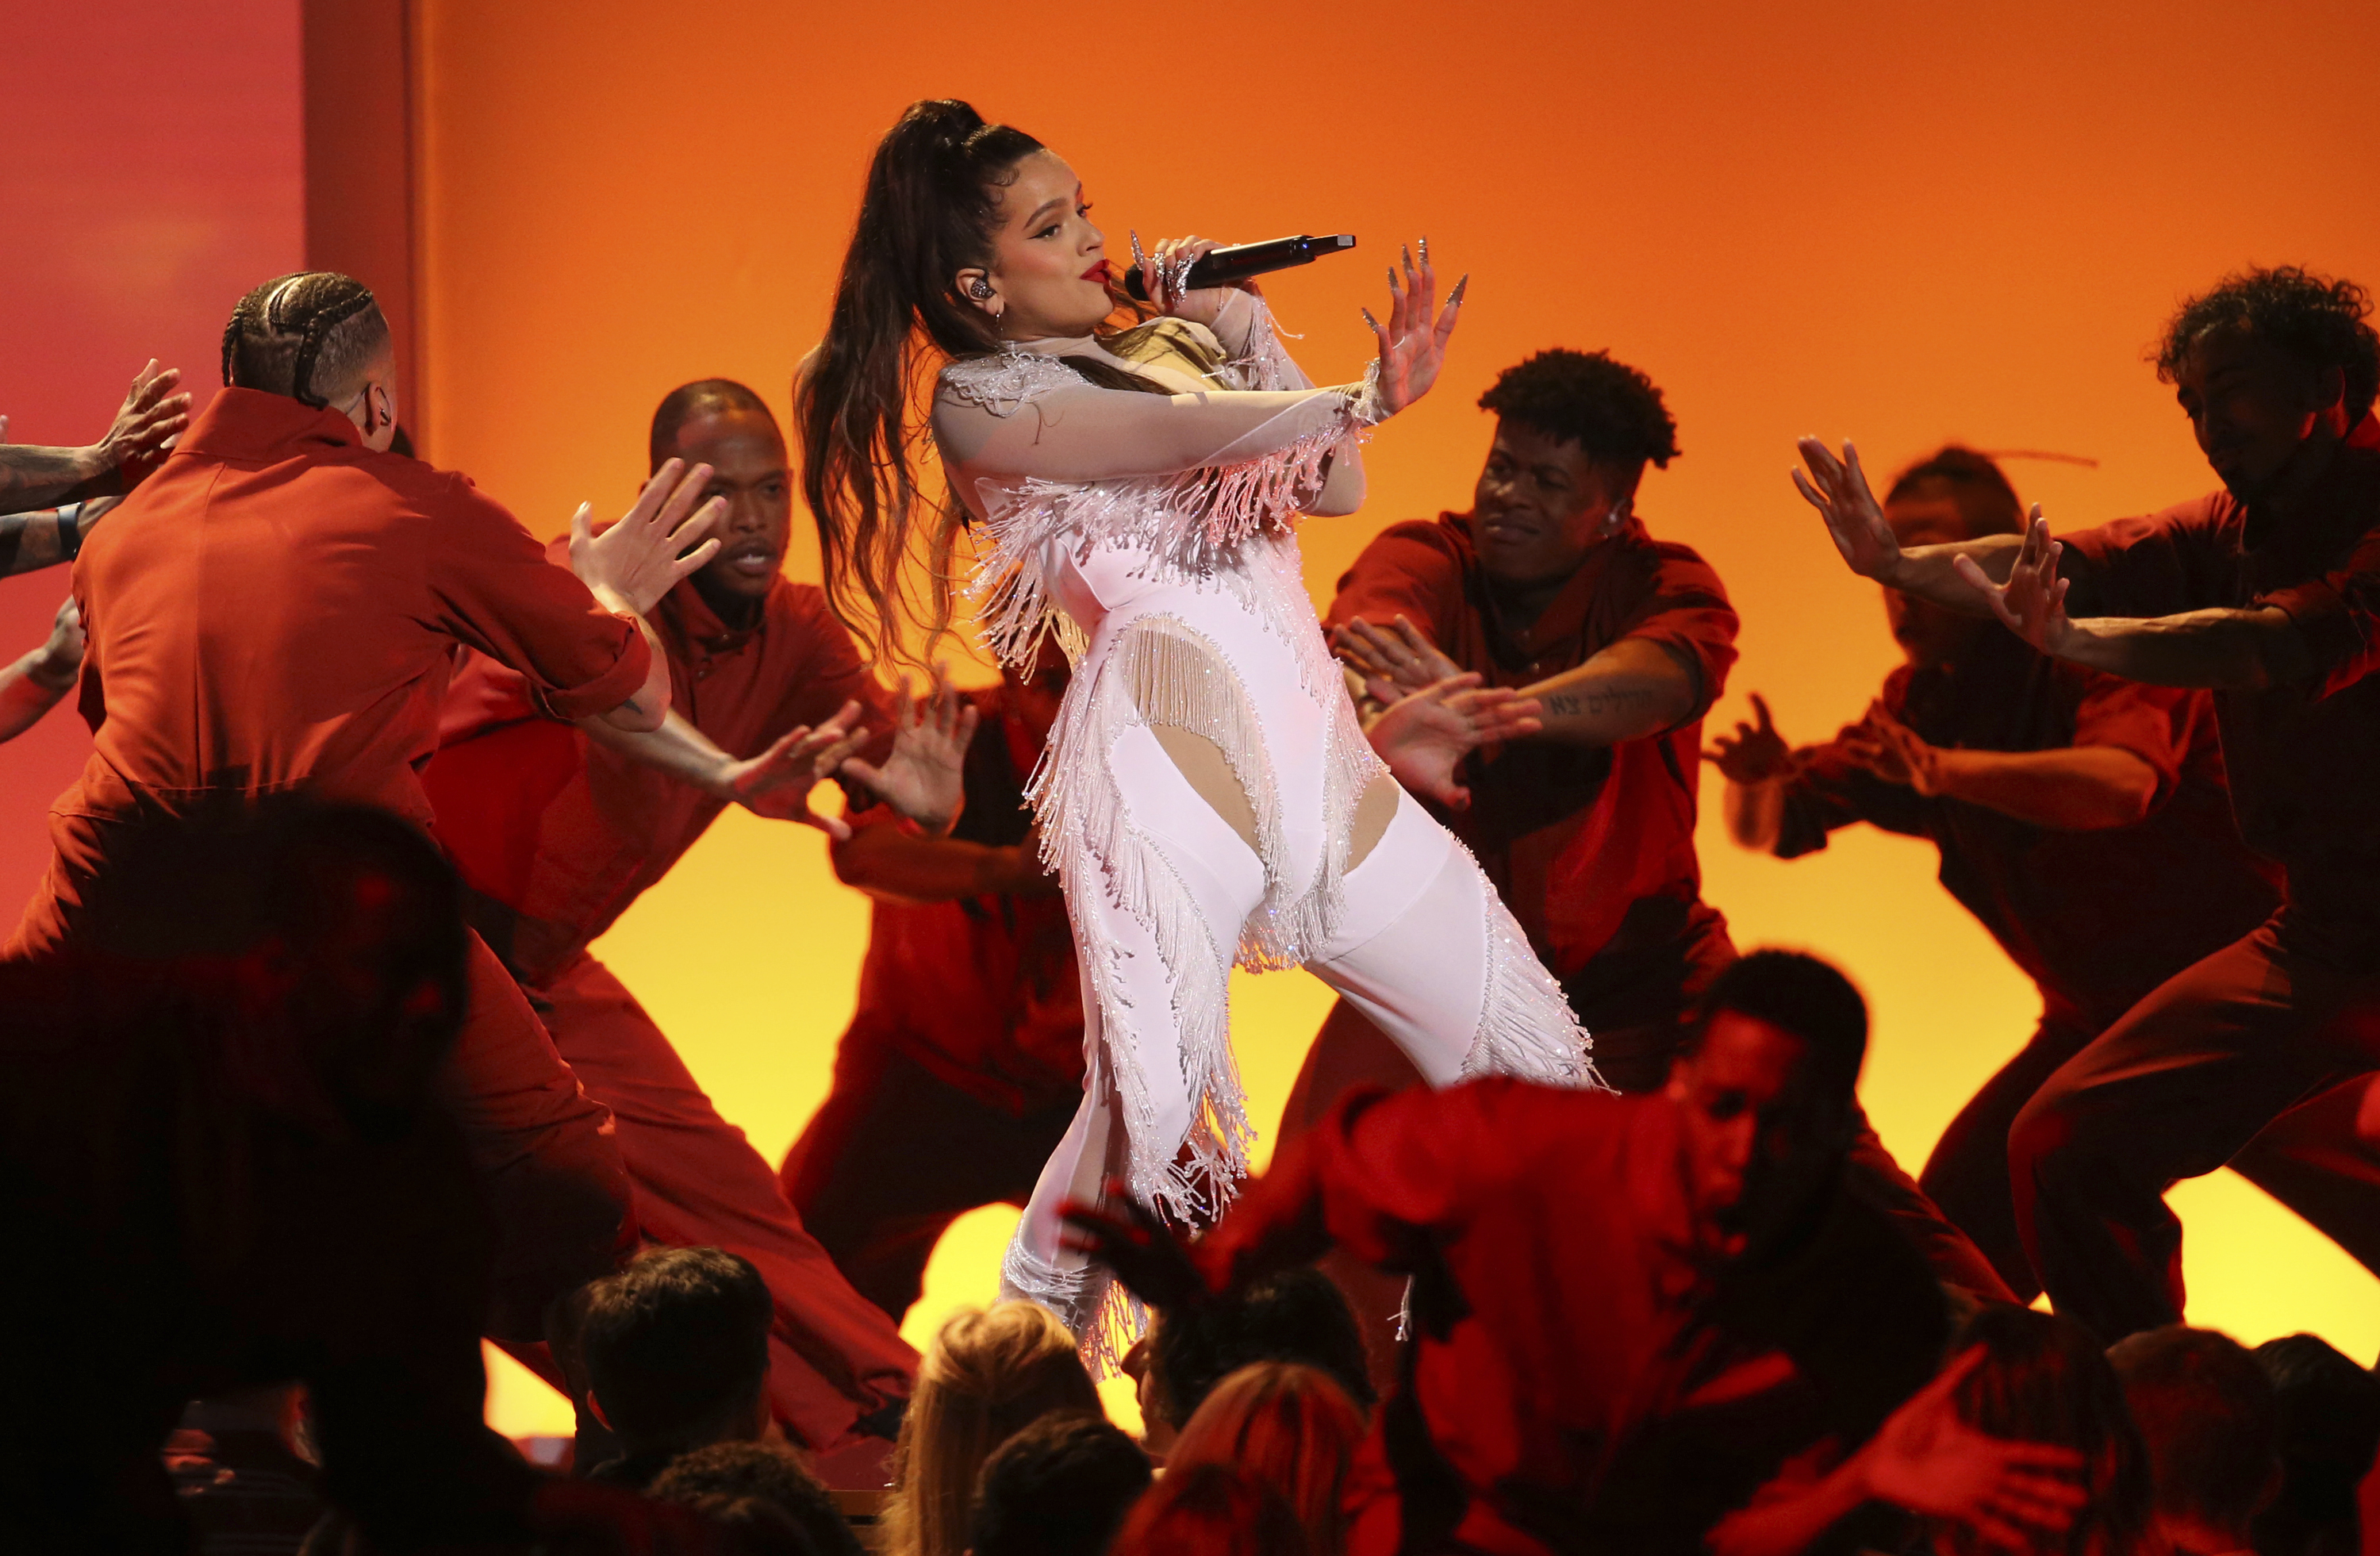 Rosalia7649375 - Billie Eilish arrasó en los Grammy